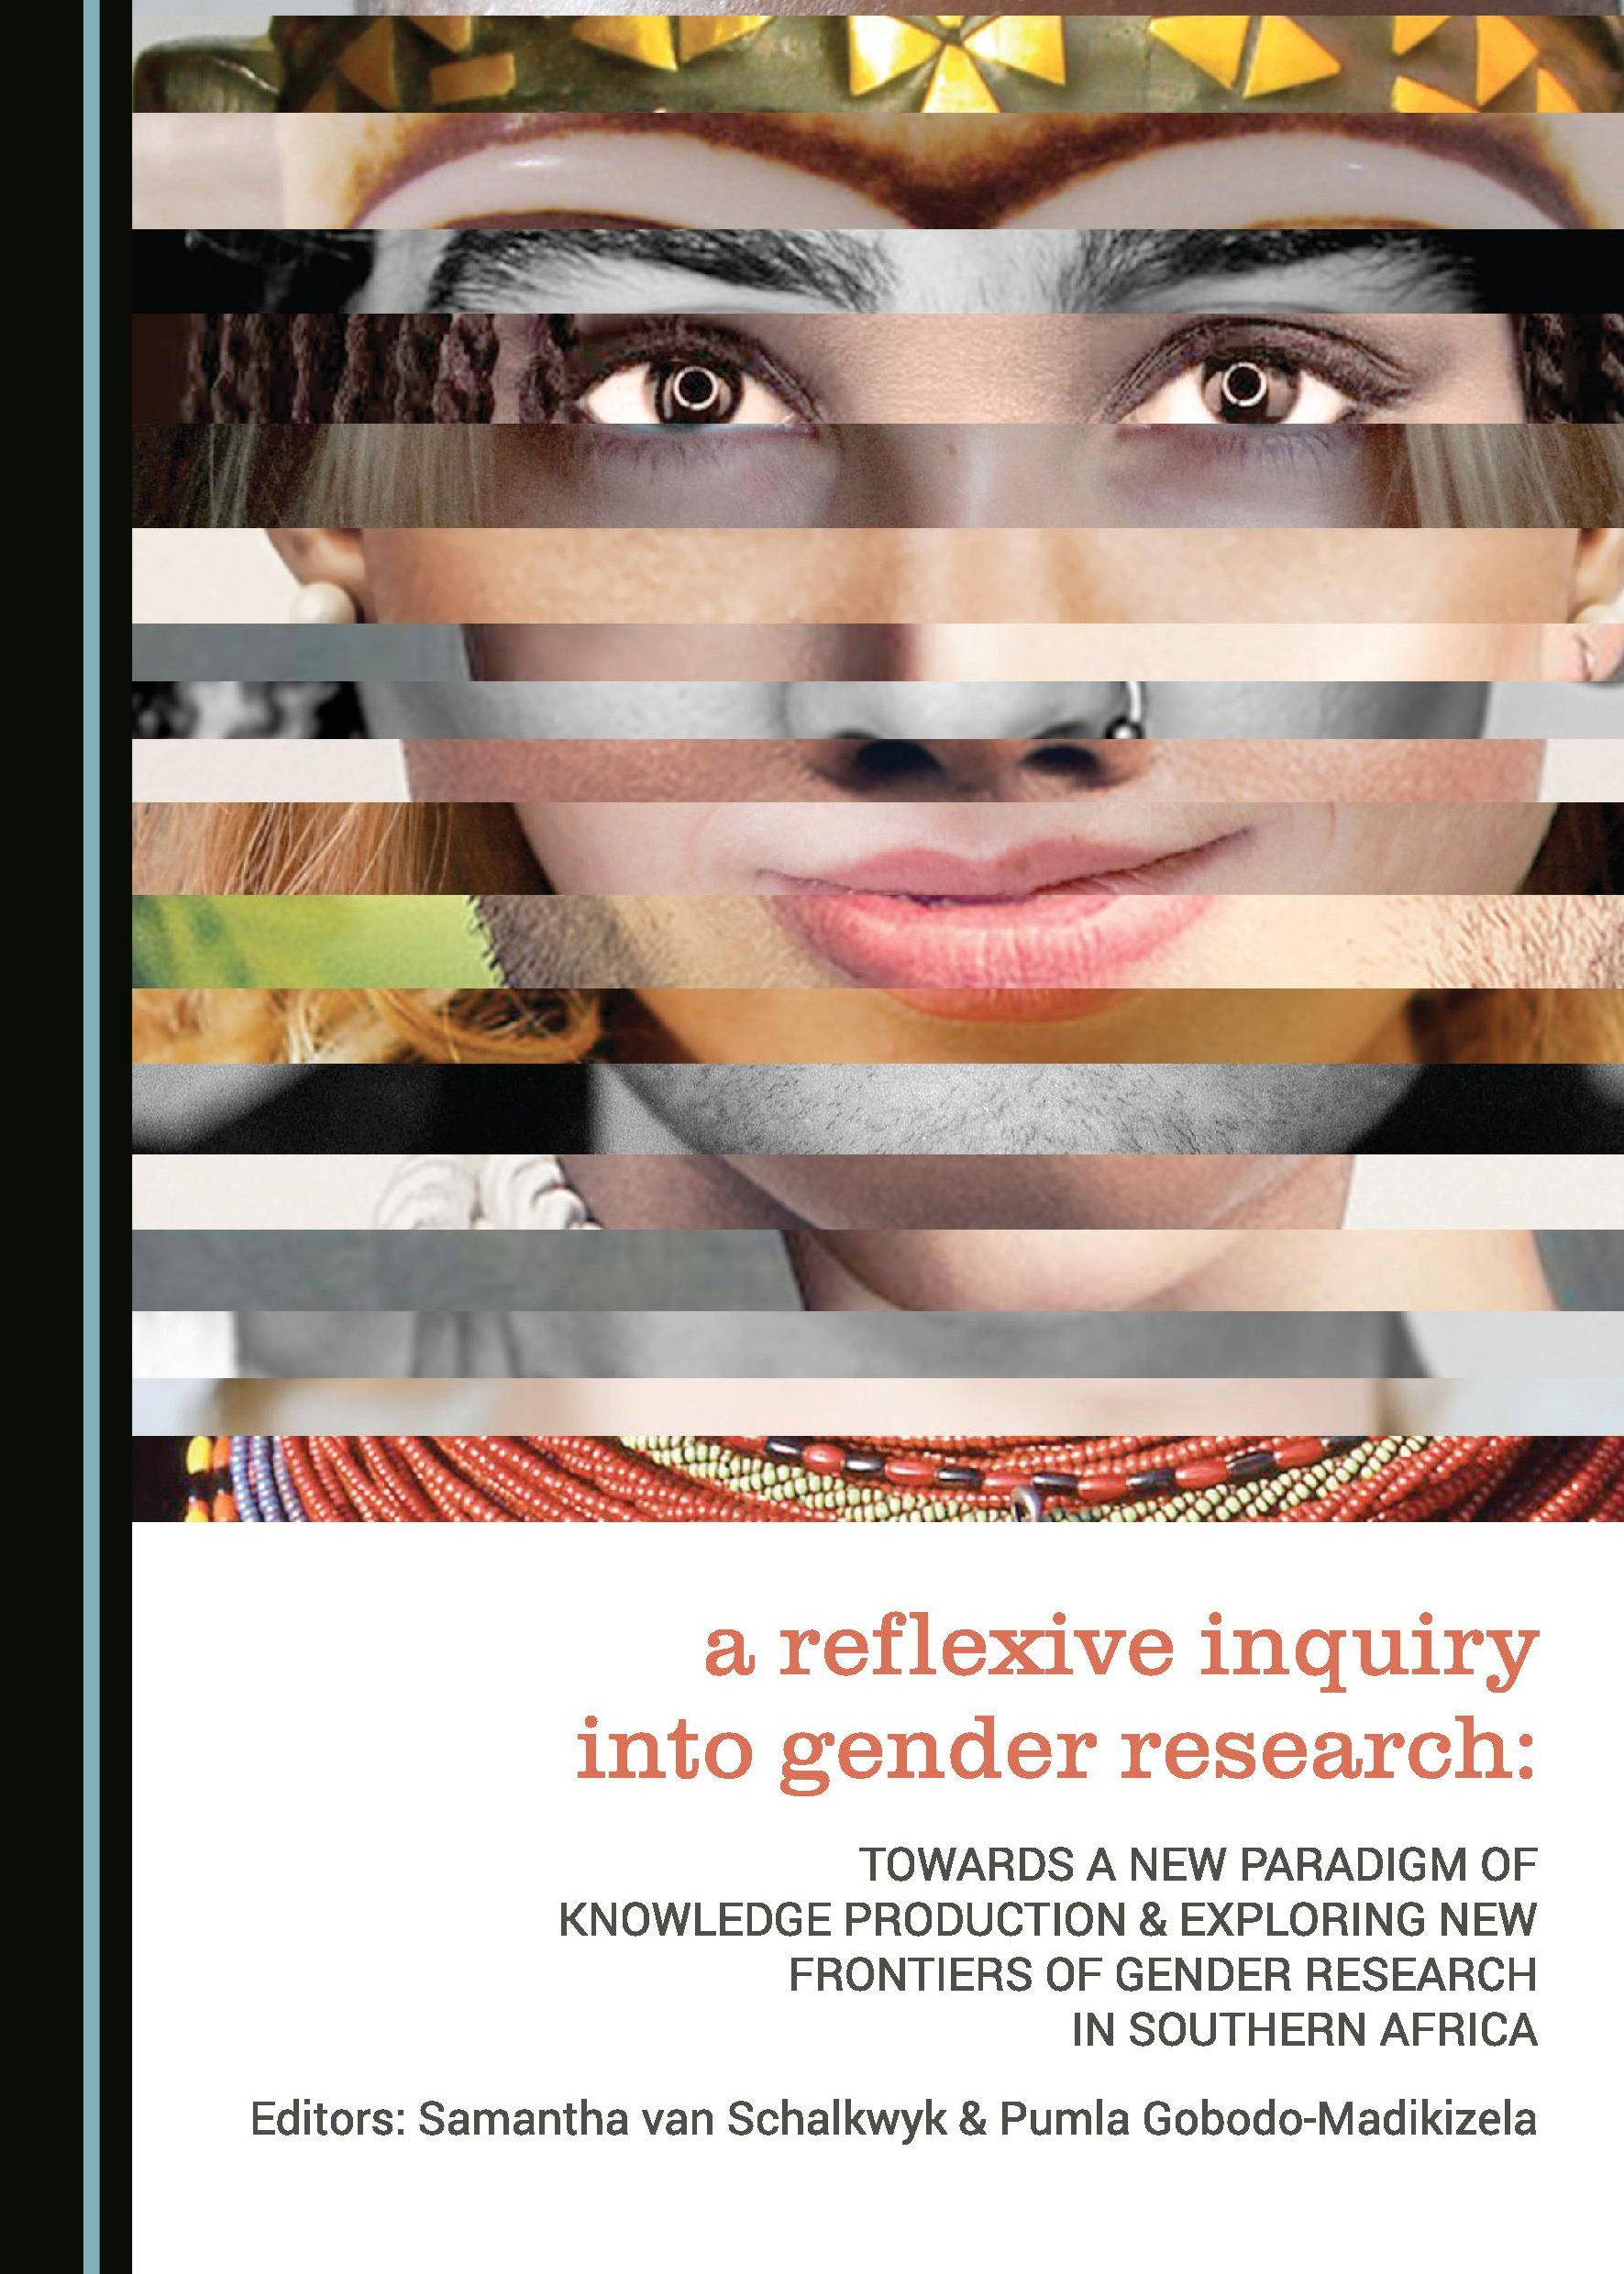 A Reflexive Inquiry into Gender Research: Towards a New Paradigm of Knowledge Production & Exploring New Frontiers of Gender Research in Southern Africa